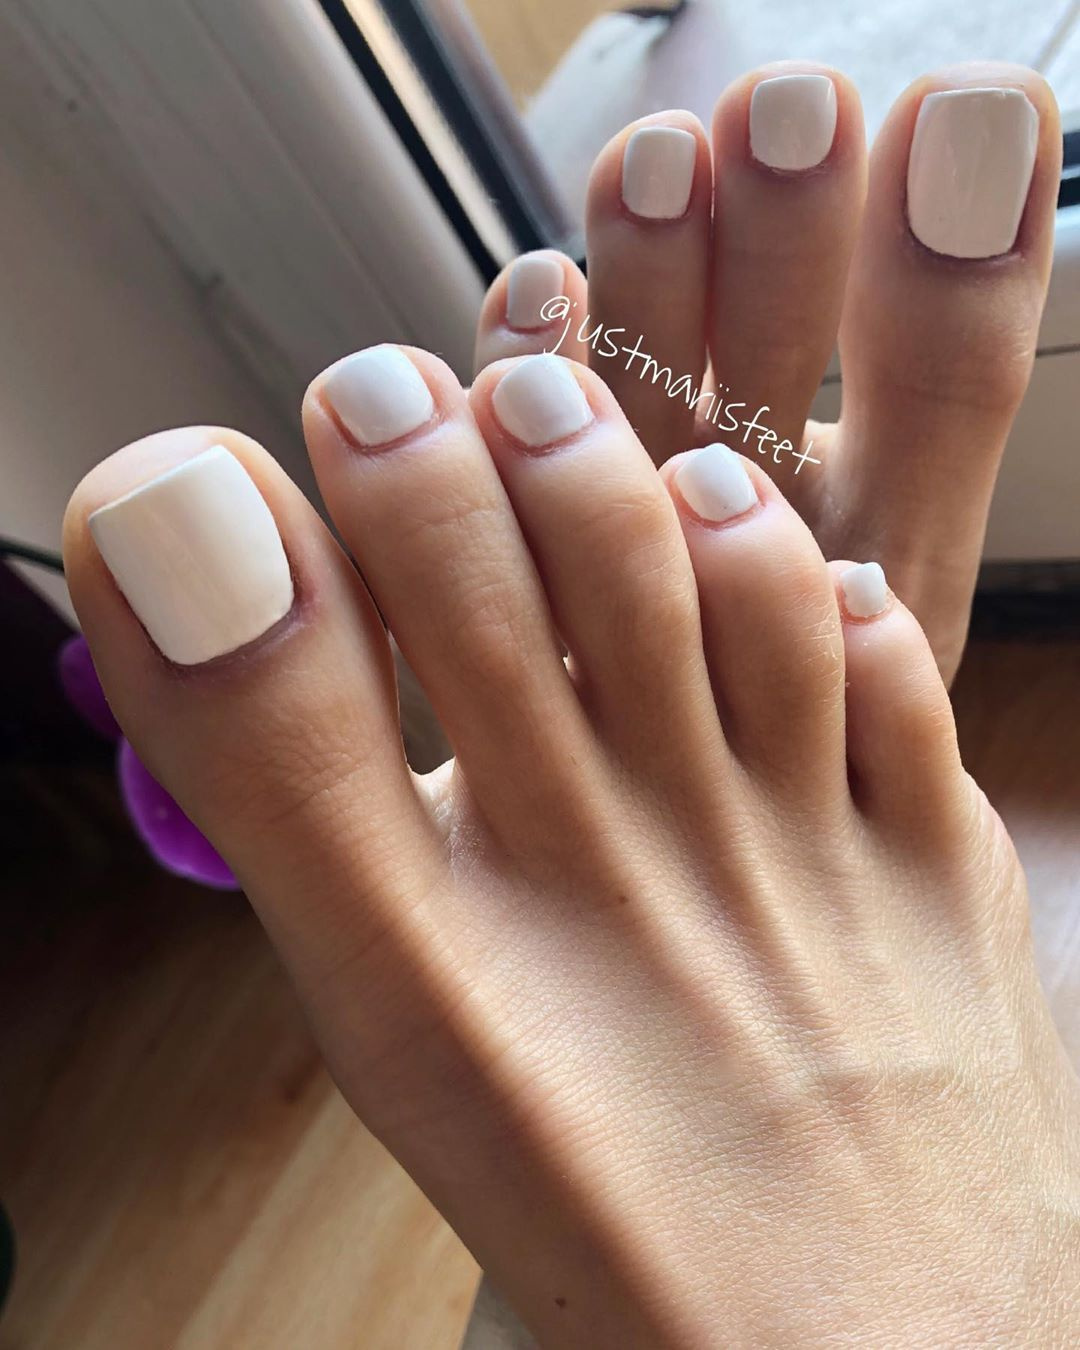 Image May Contain One Or More People And Closeup Feet Nails Manicure And Pedicure Classy Nail Designs